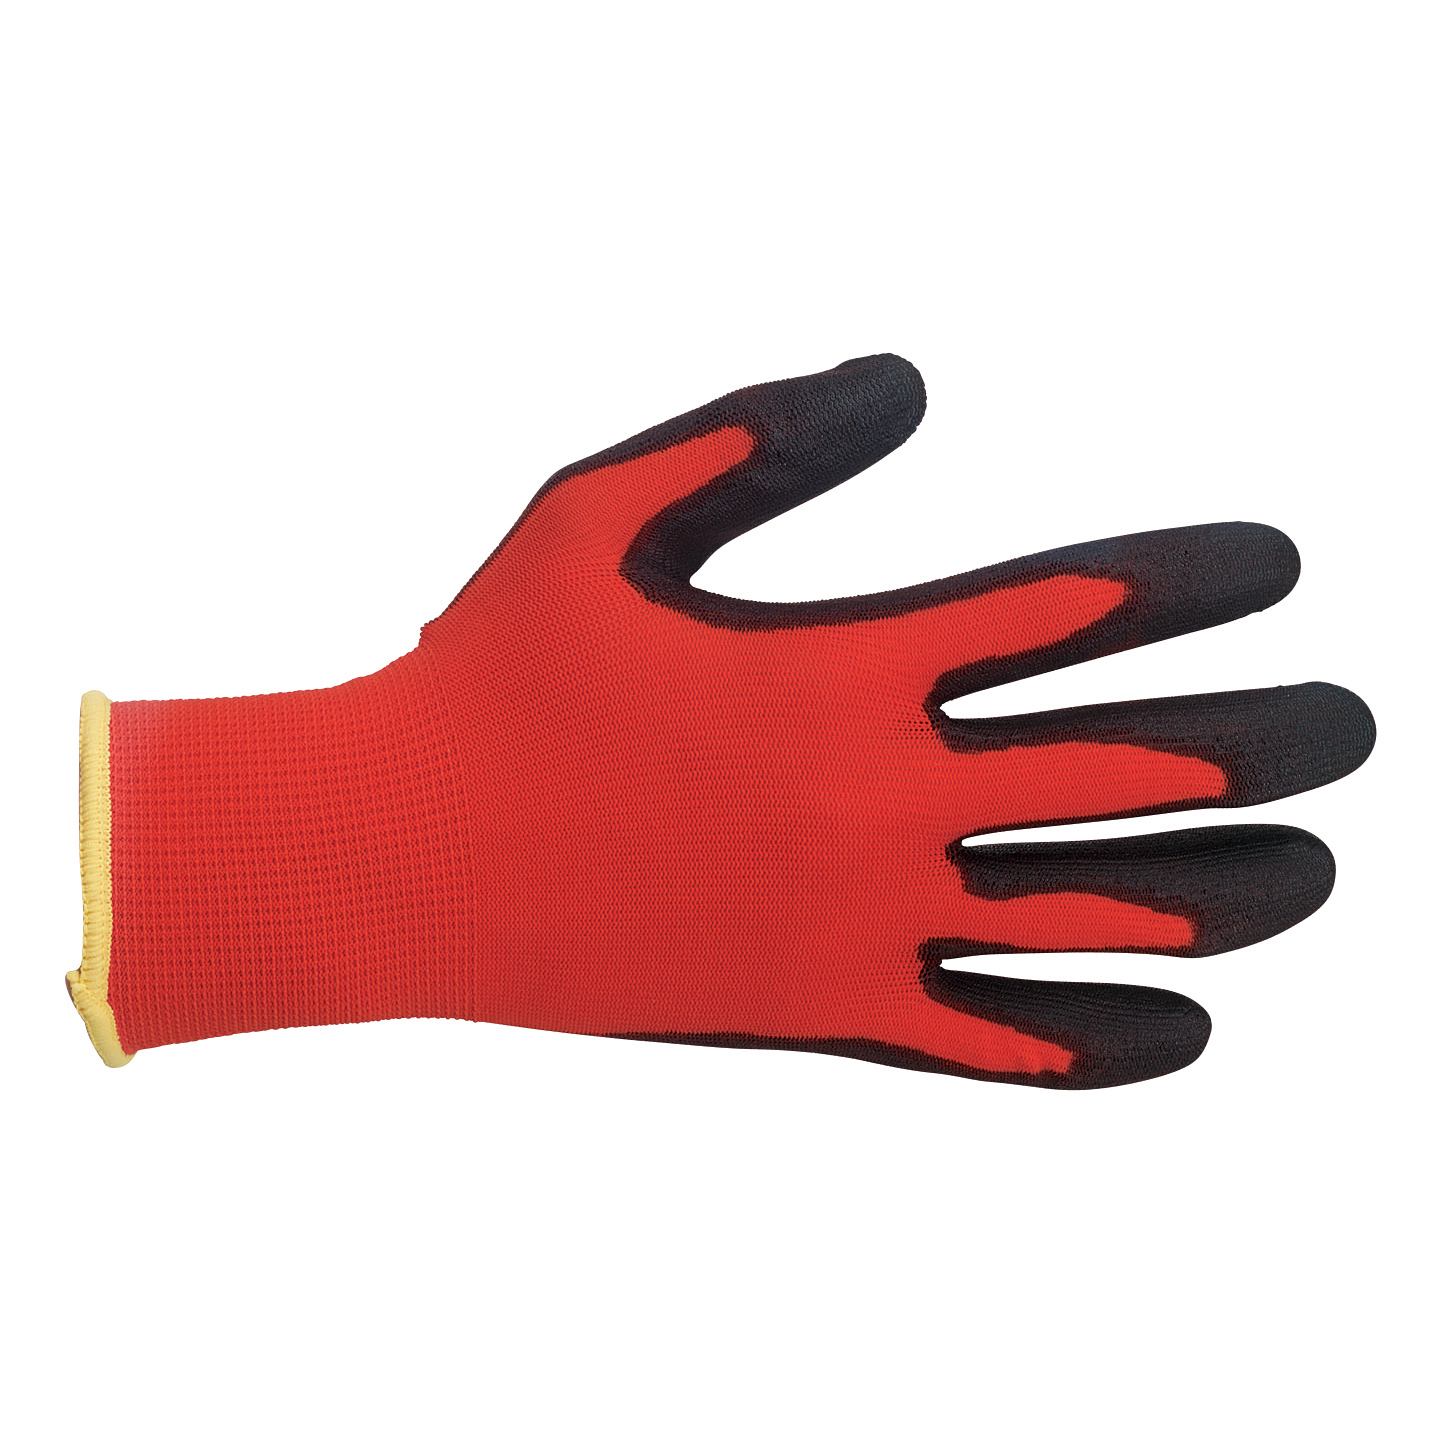 Polyco Safety Gloves Light-duty Level 1 PU Coated Size 9 Red/Black [Pair] Ref MRP/09